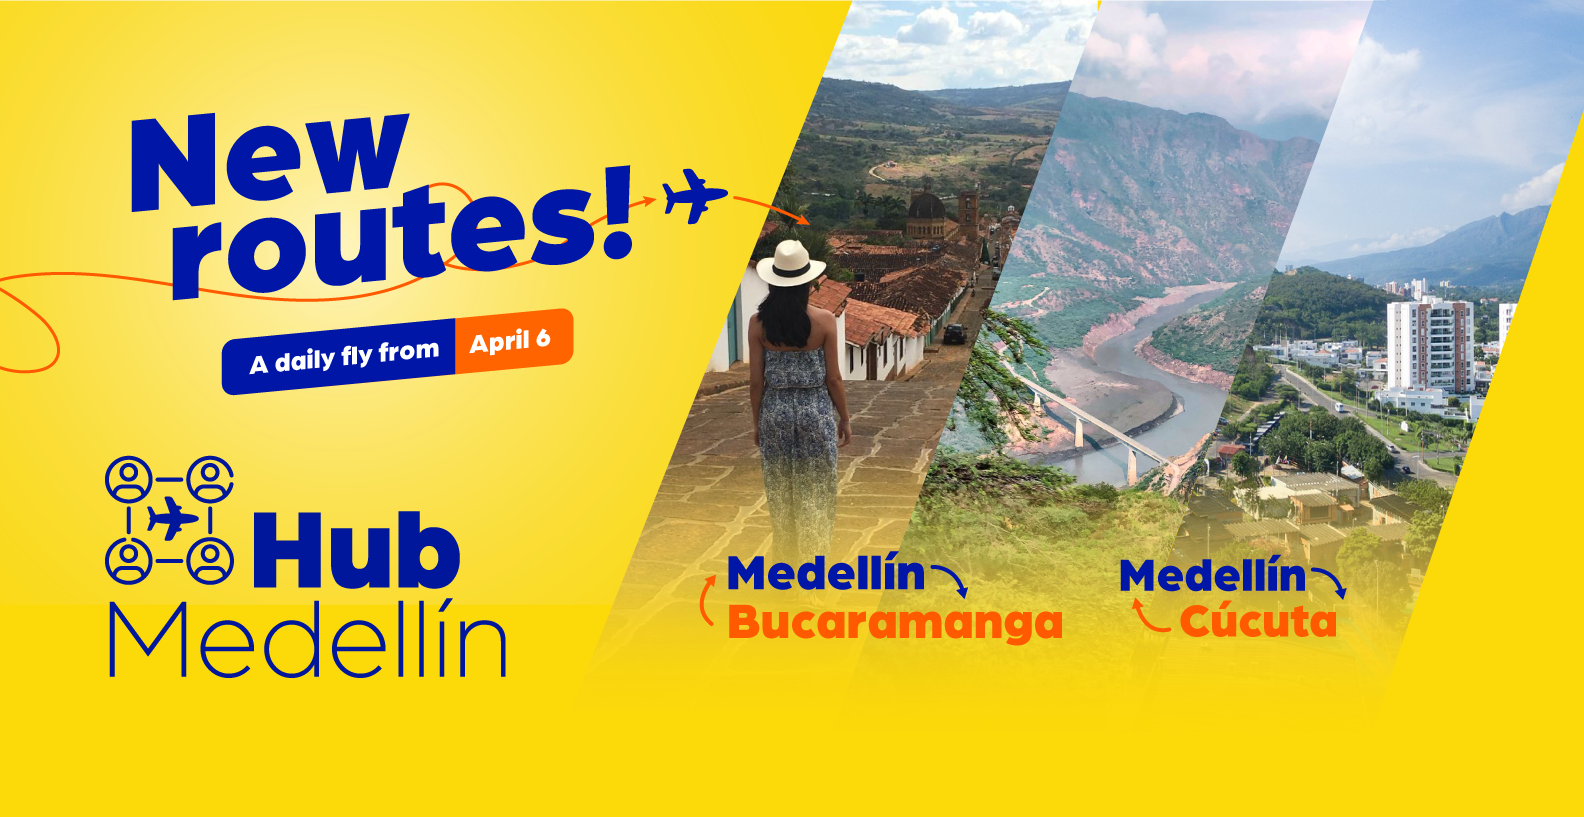 New Routes Viva Air